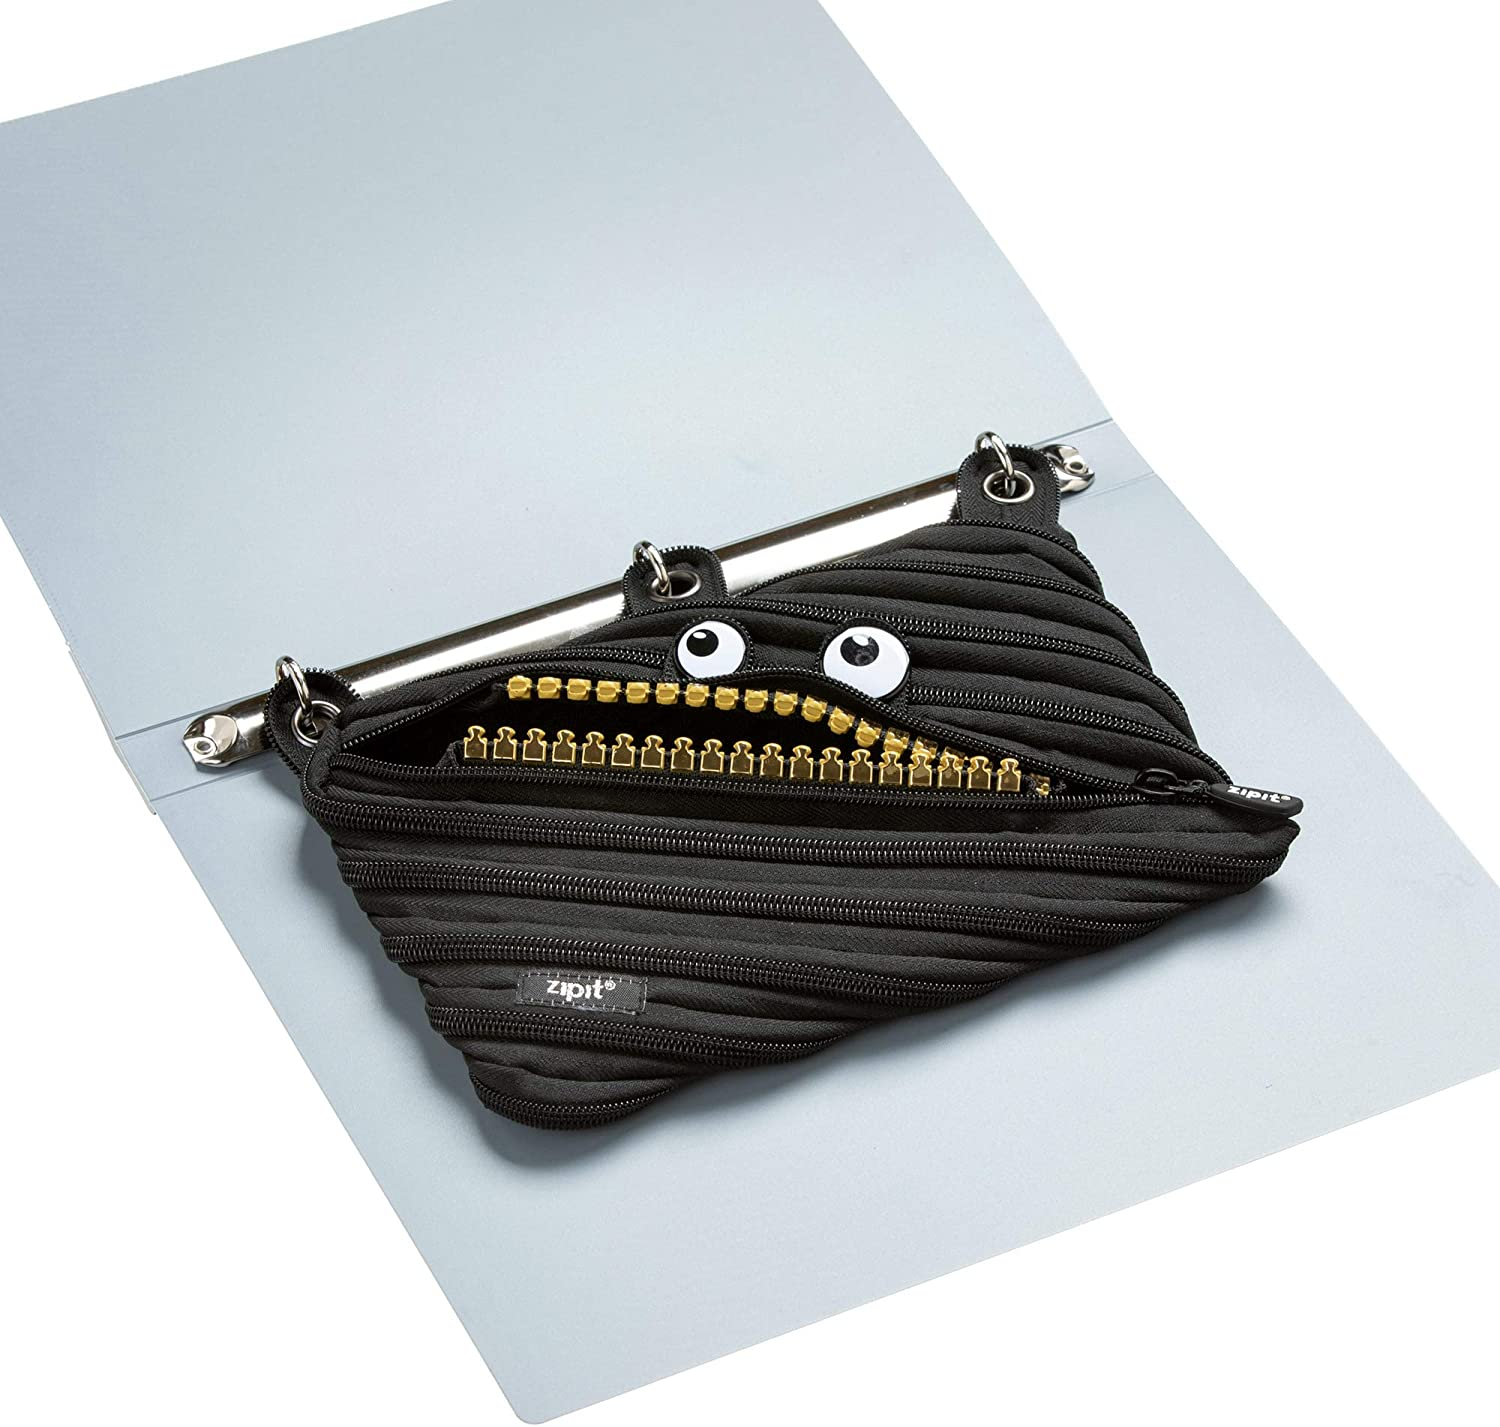 ZIPIT Grillz 3-Ring Binder Pencil Pouch Made of One Long Zipper! Large Capacity Pen Case for Kids and Teens Black